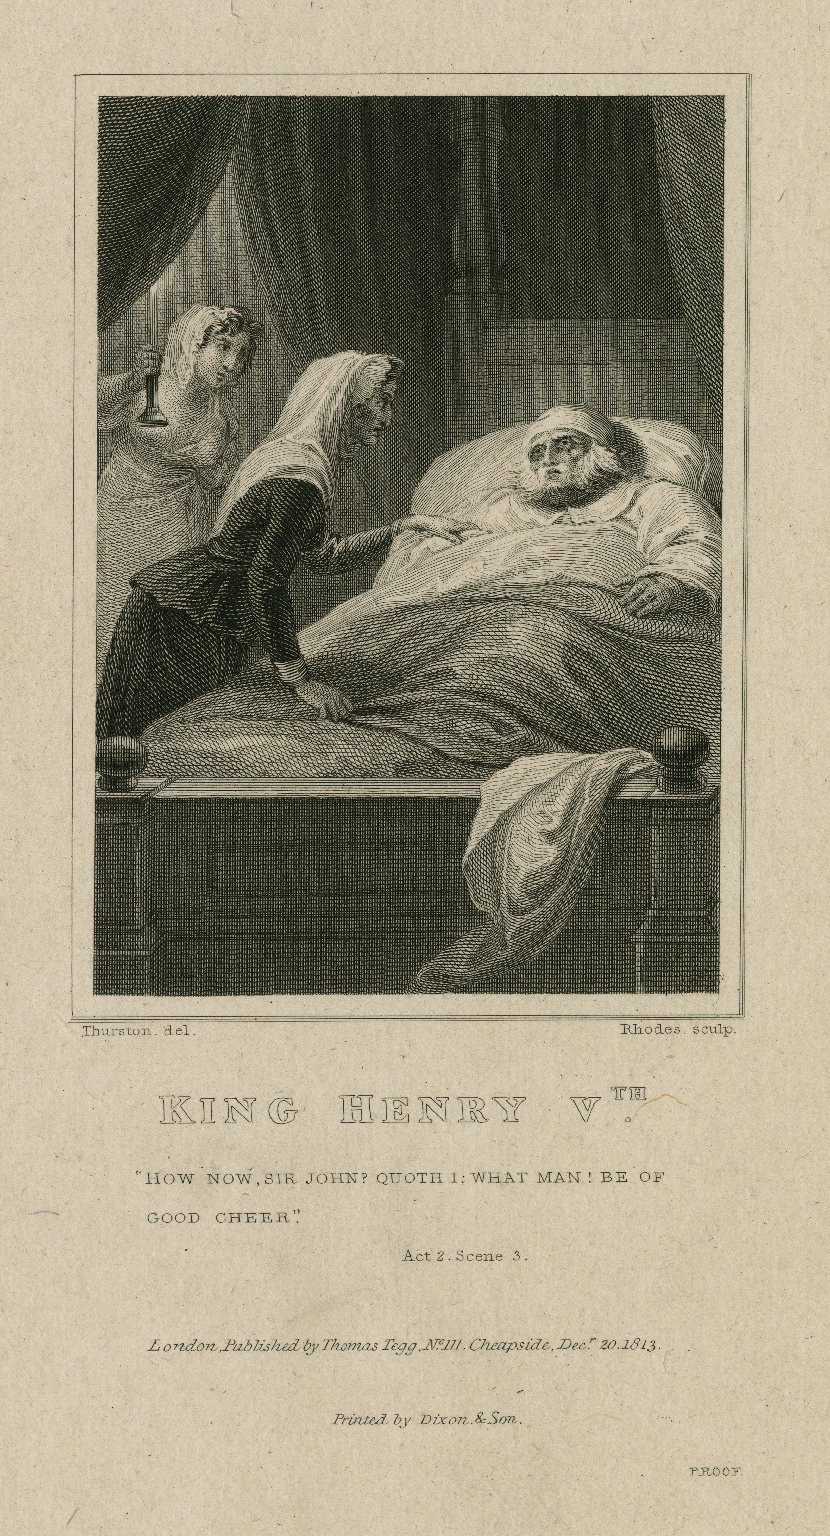 King Henry Vth: How now, sir John? quoth I. What man! be of good cheer ; act 2, scene 3 [graphic] / Thurston, del. ; Rhodes sculp.